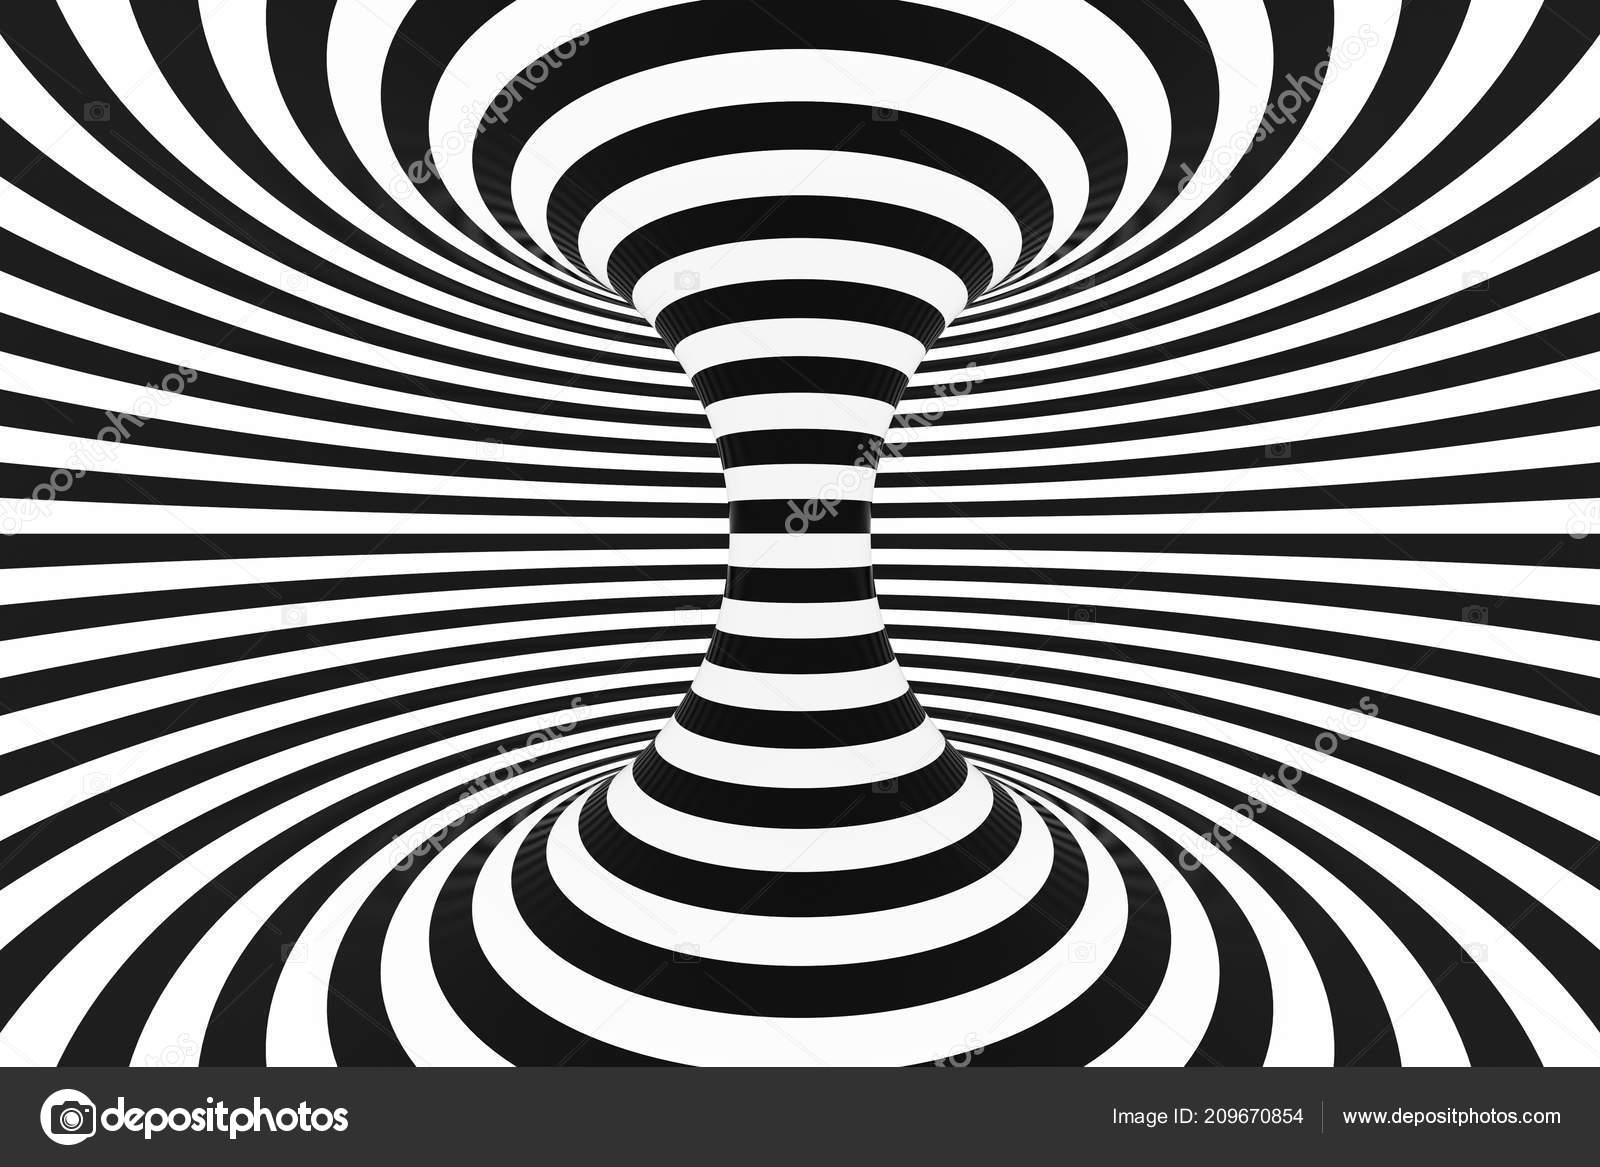 depositphotos 209670854 stock photo black and white spiral tunnel